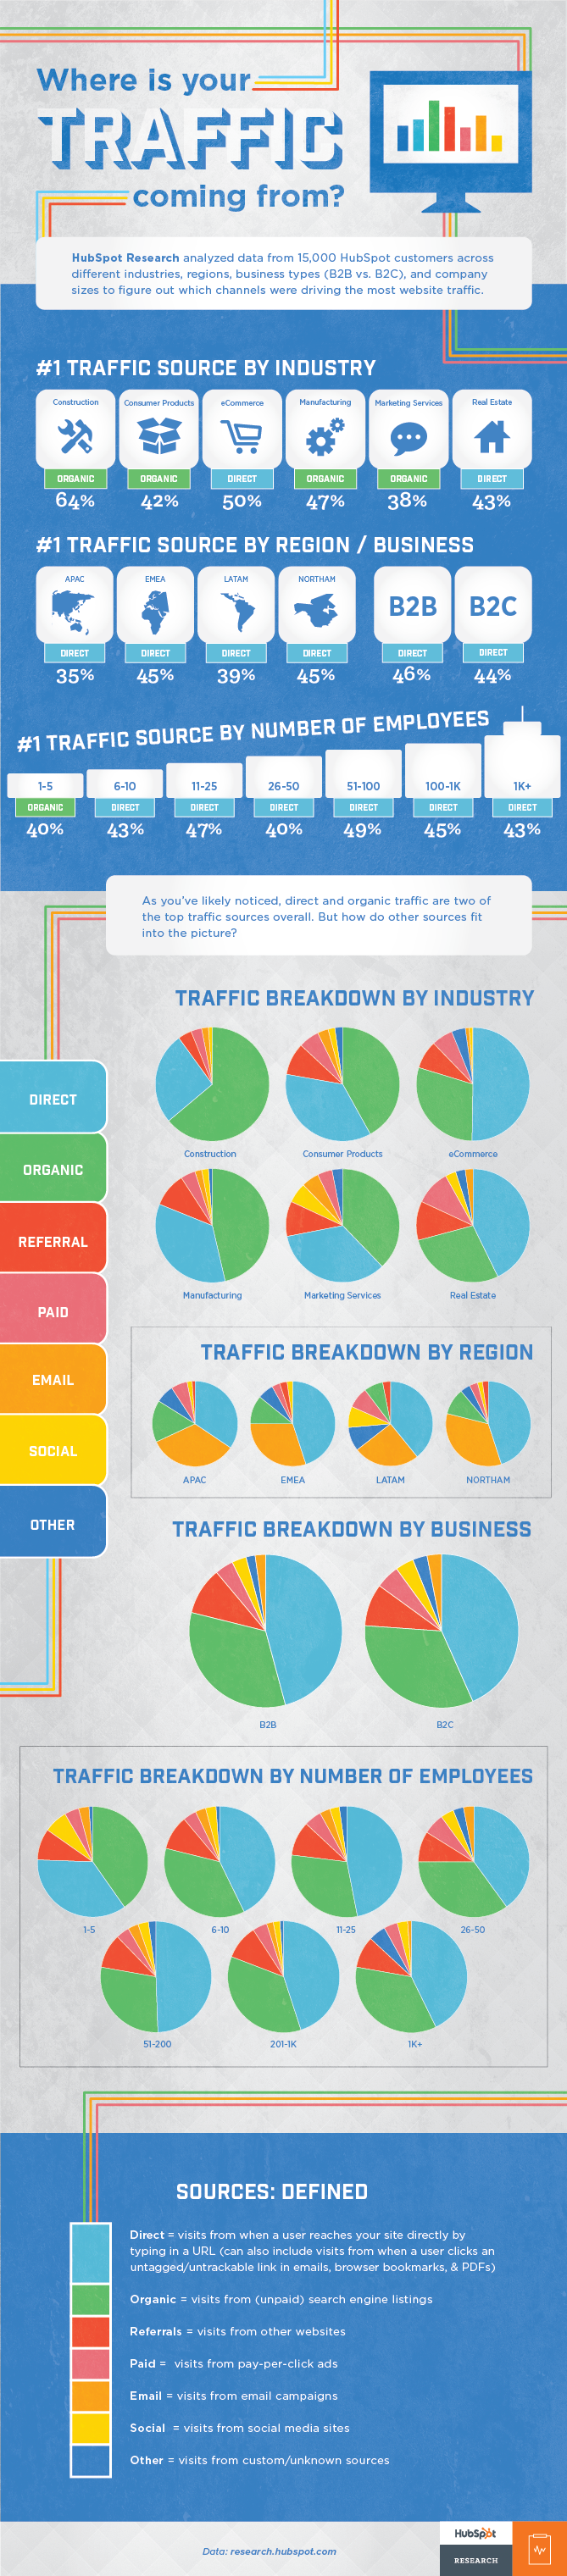 where-is-your-traffic-coming-from-infographic